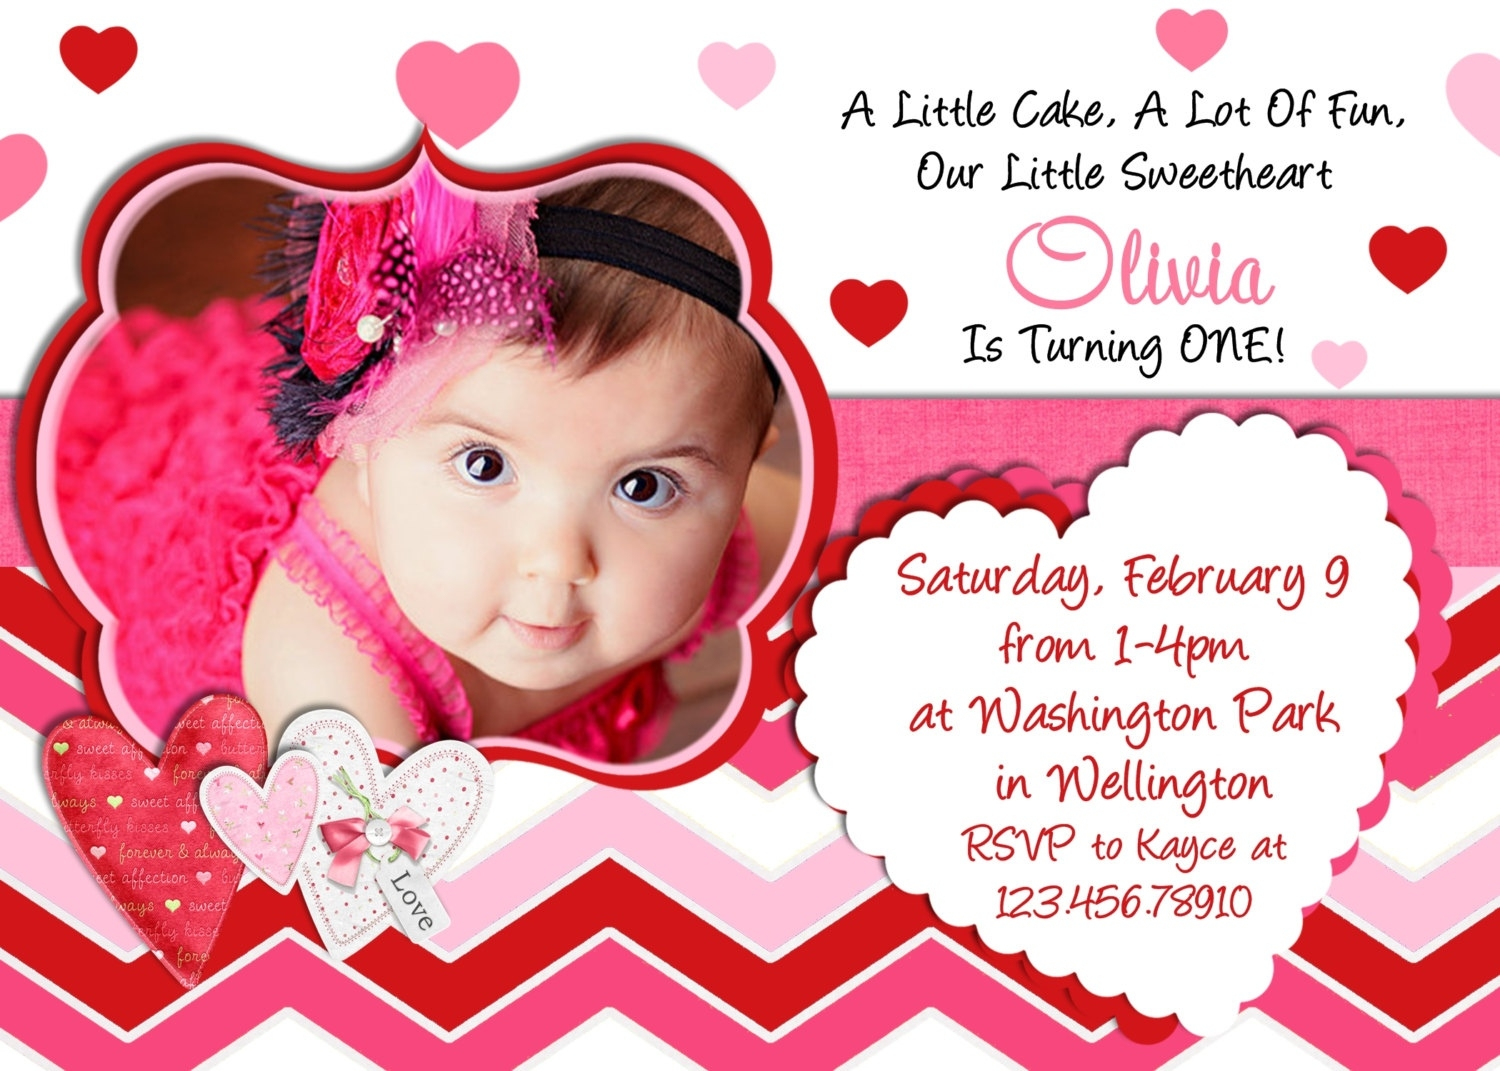 birthday invitation card design for girls ; valentine-birthday-invitation-photo-card-design-printable-and-for-birthday-invitation-card-design-for-girls